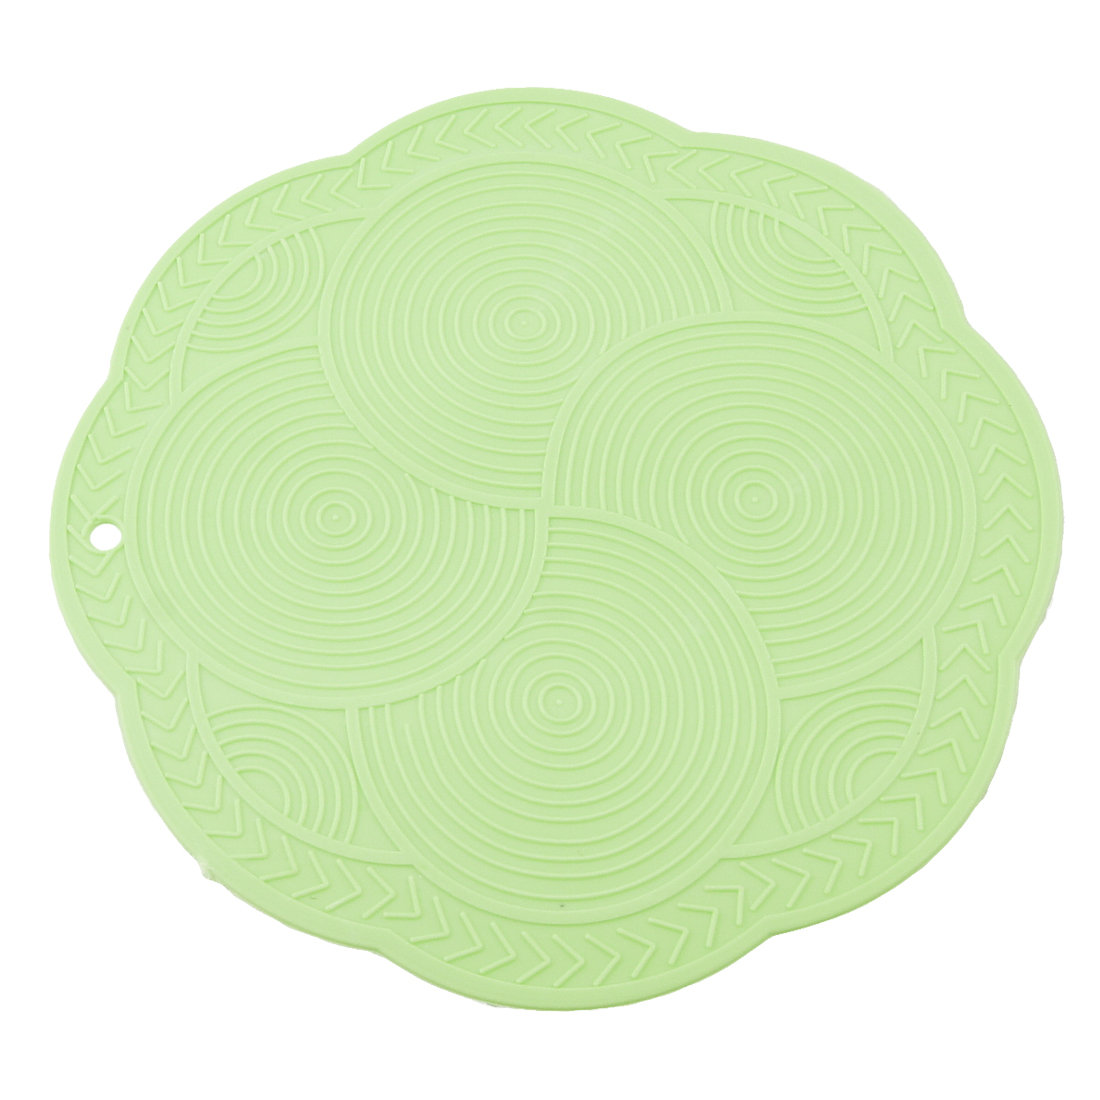 Flexible Round Nonslip Silicone Heat Resistant Mat Green 2 Pcs